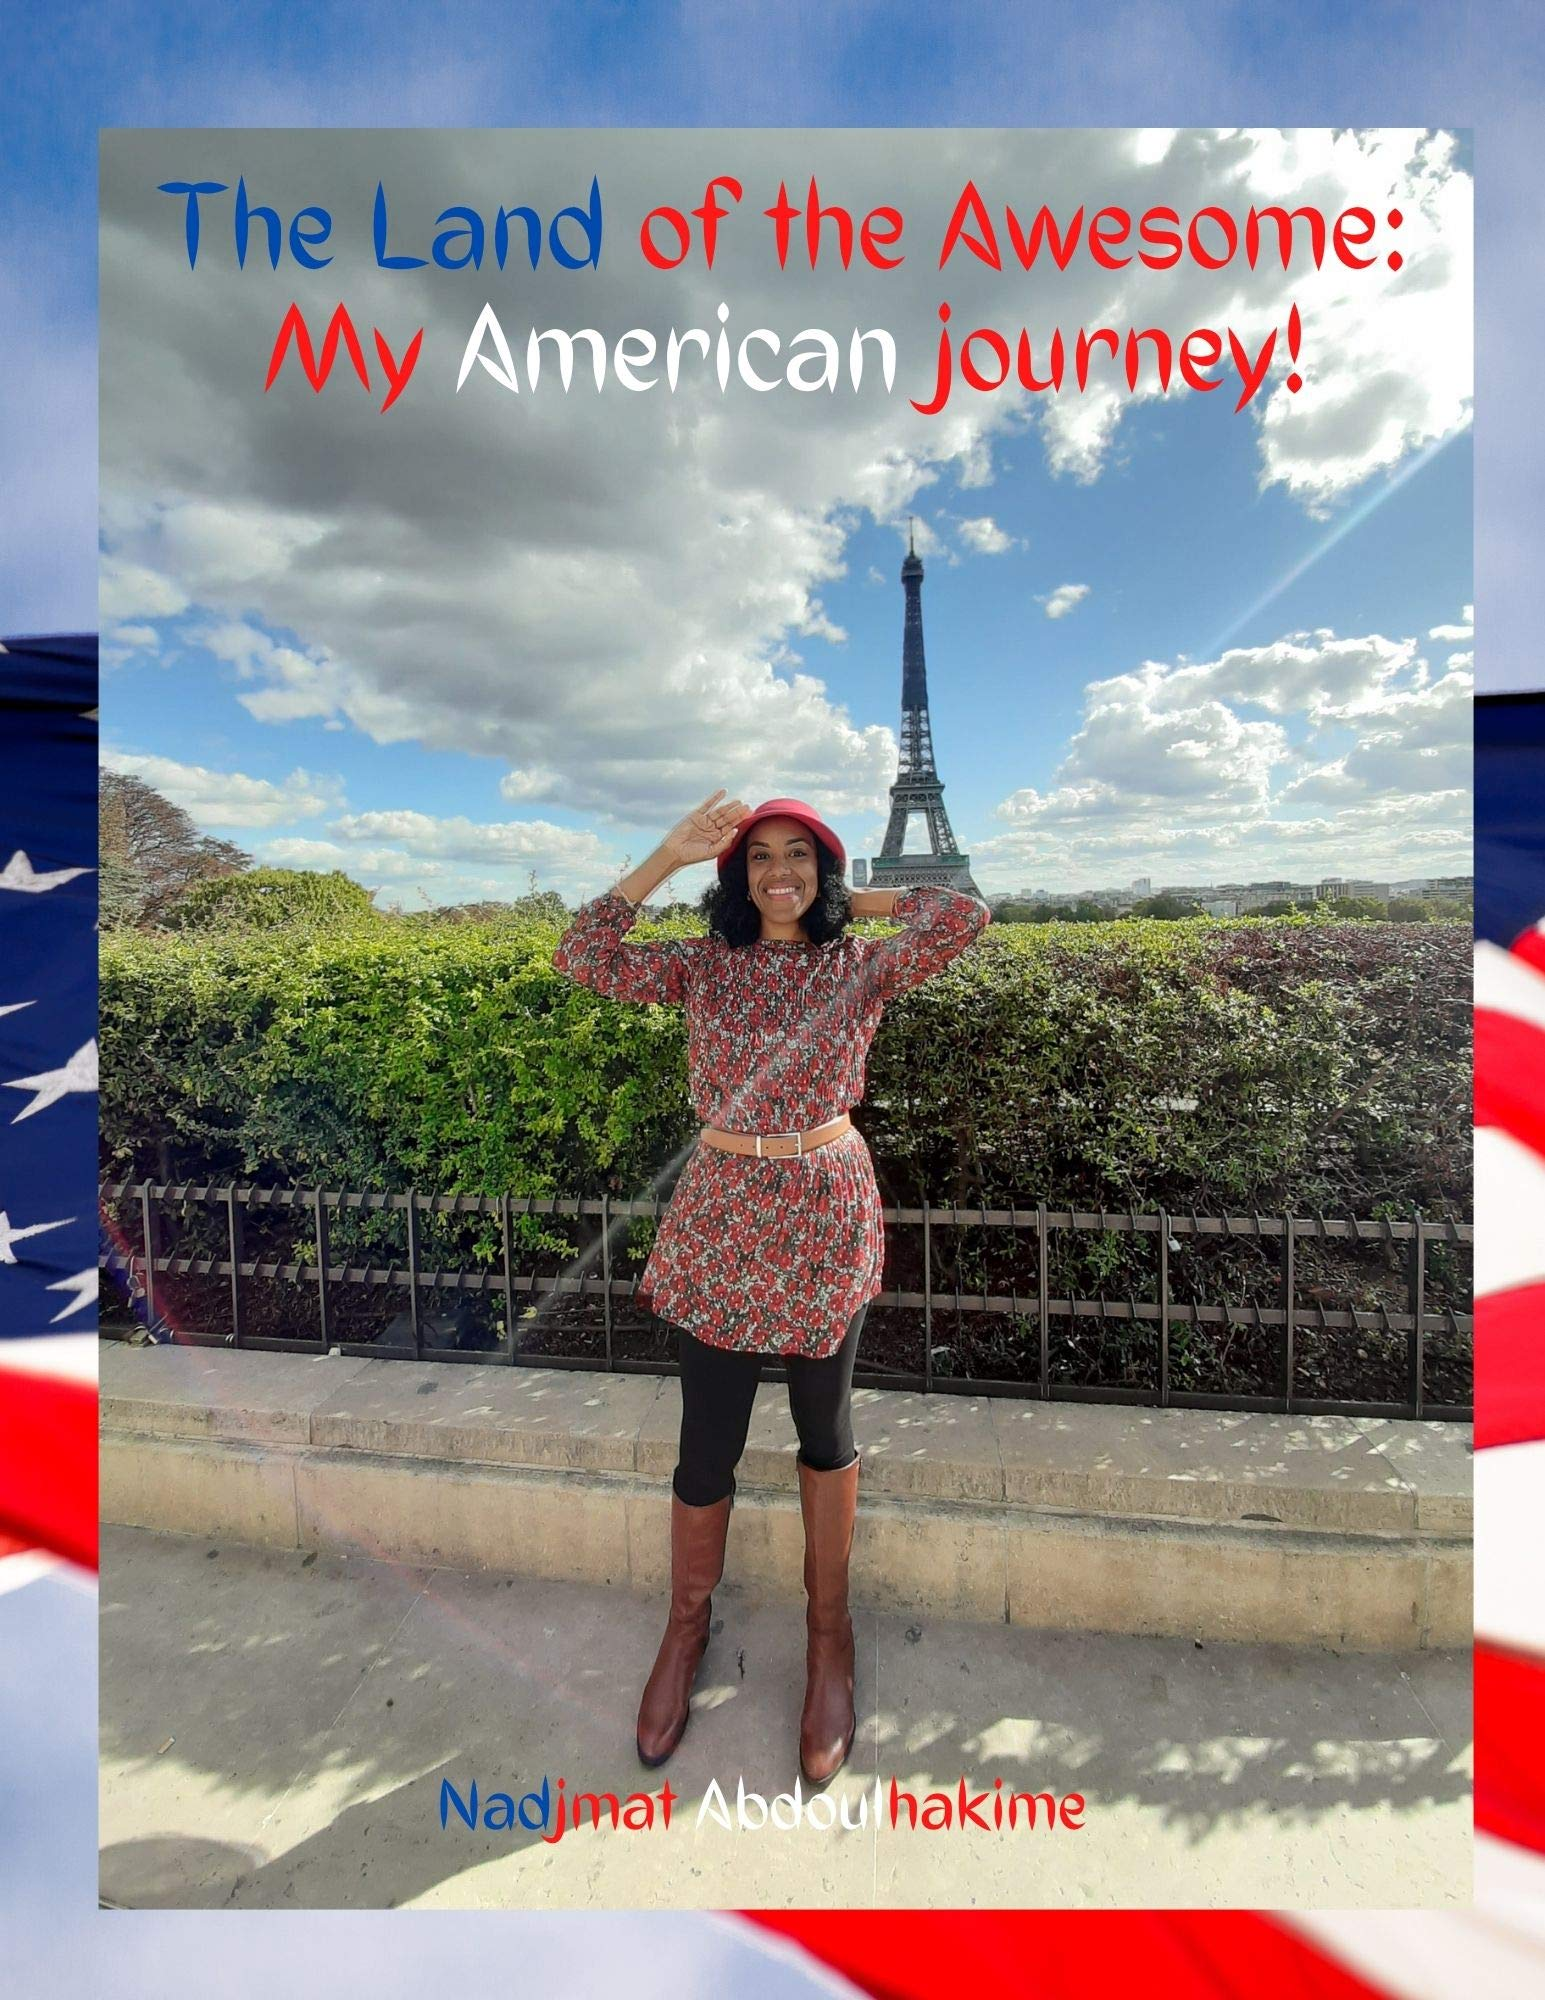 The Land of the Awesome: My American journey